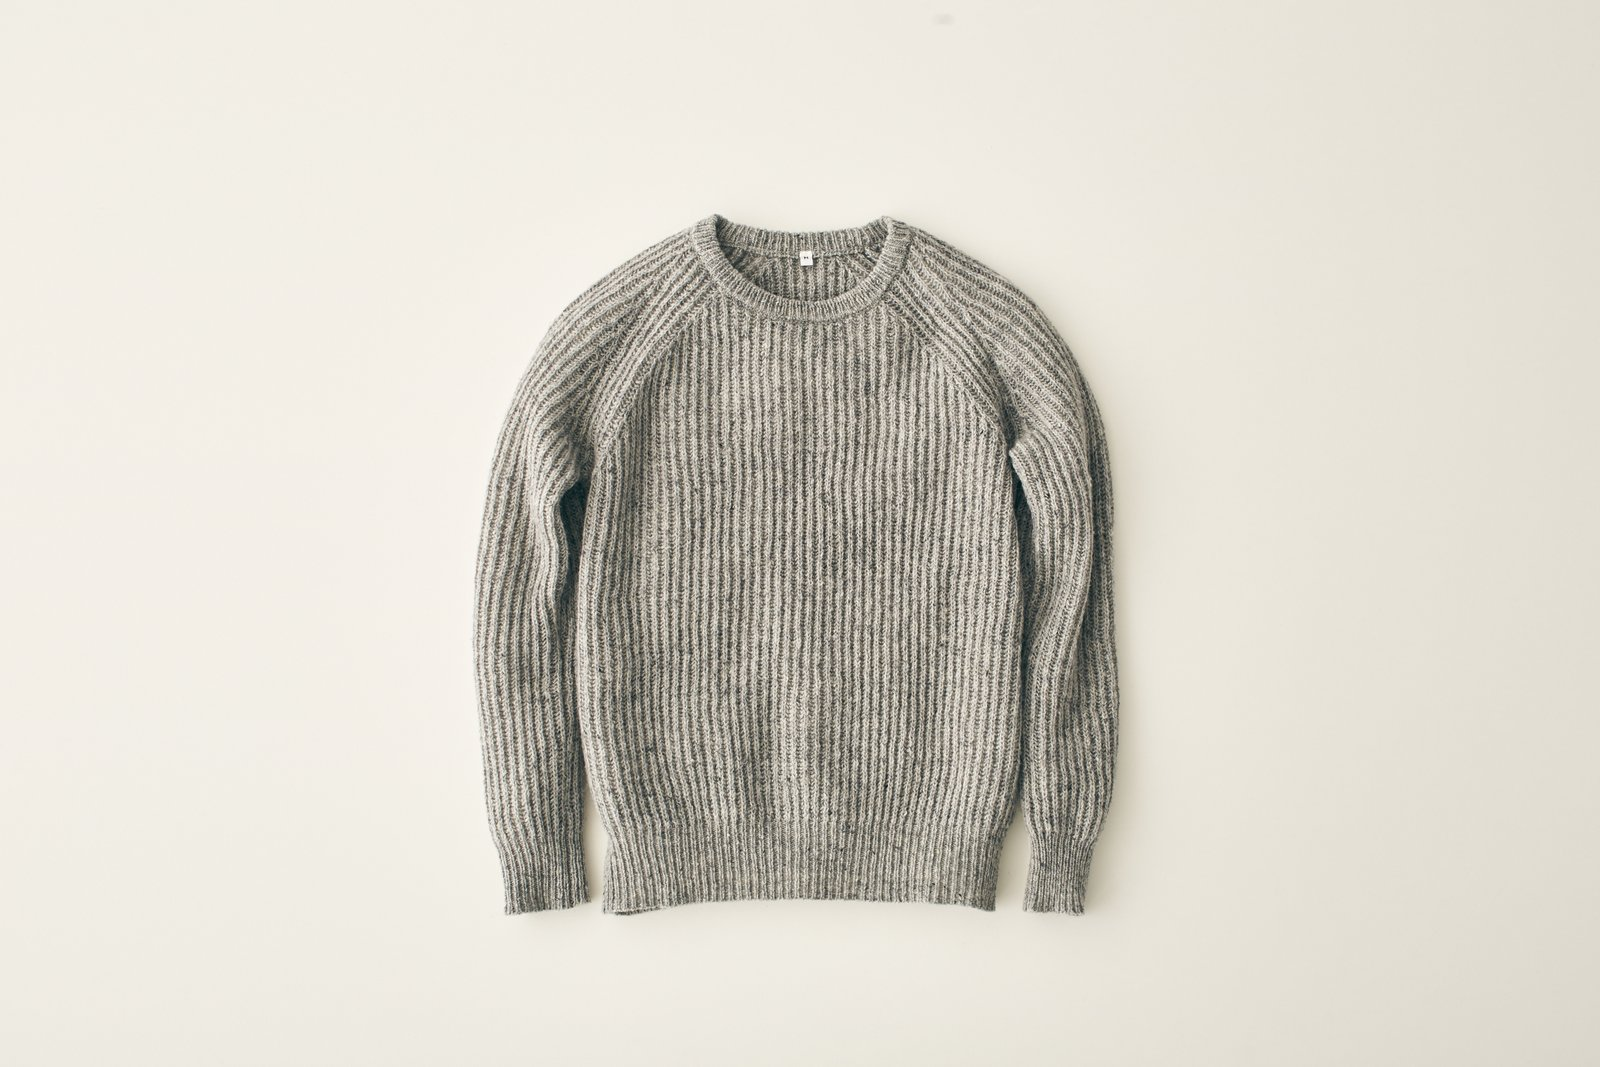 Women's Rib-Knitted Sweater, $59  Photo 7 of 7 in Every Fiber of Muji's New Clothing and Apparel Line Can Be Yours for $80 or Less